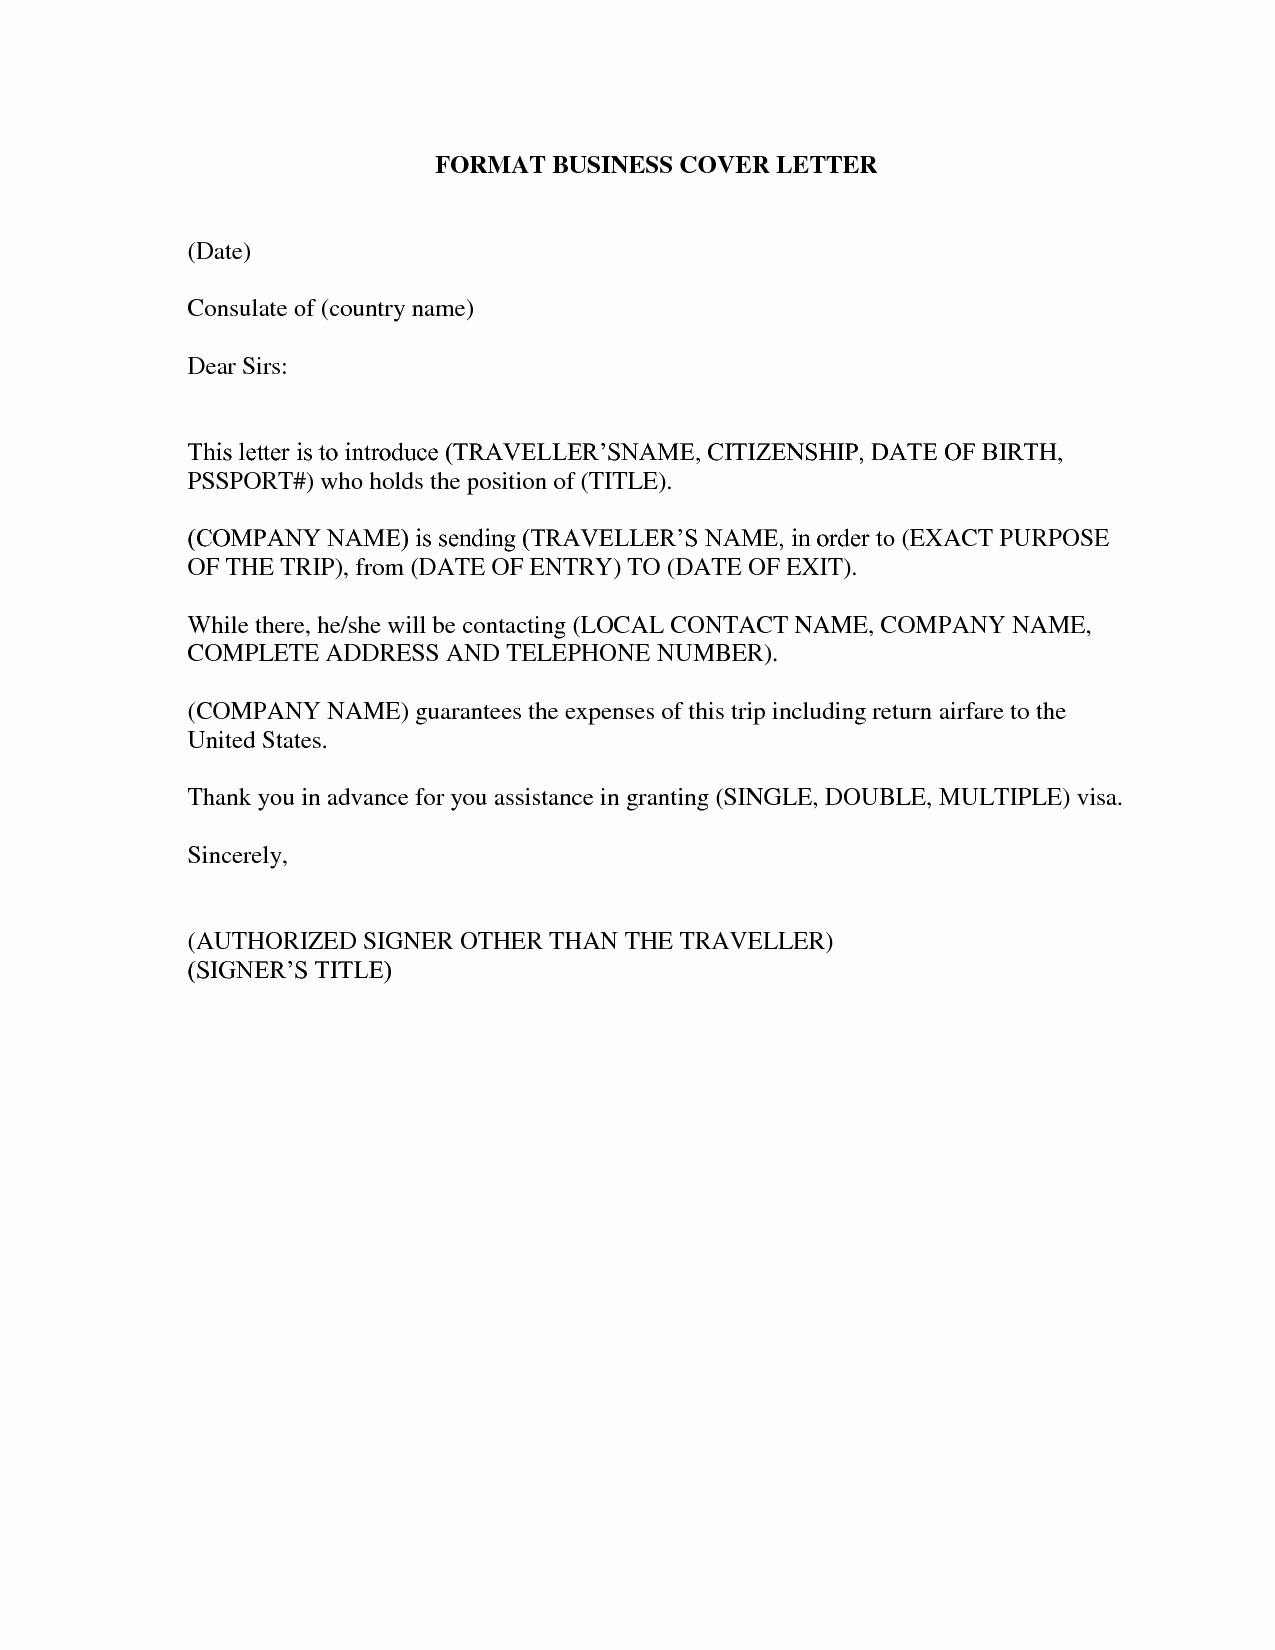 Sample Business Cover Letters Elegant Translation Business Plan Sample